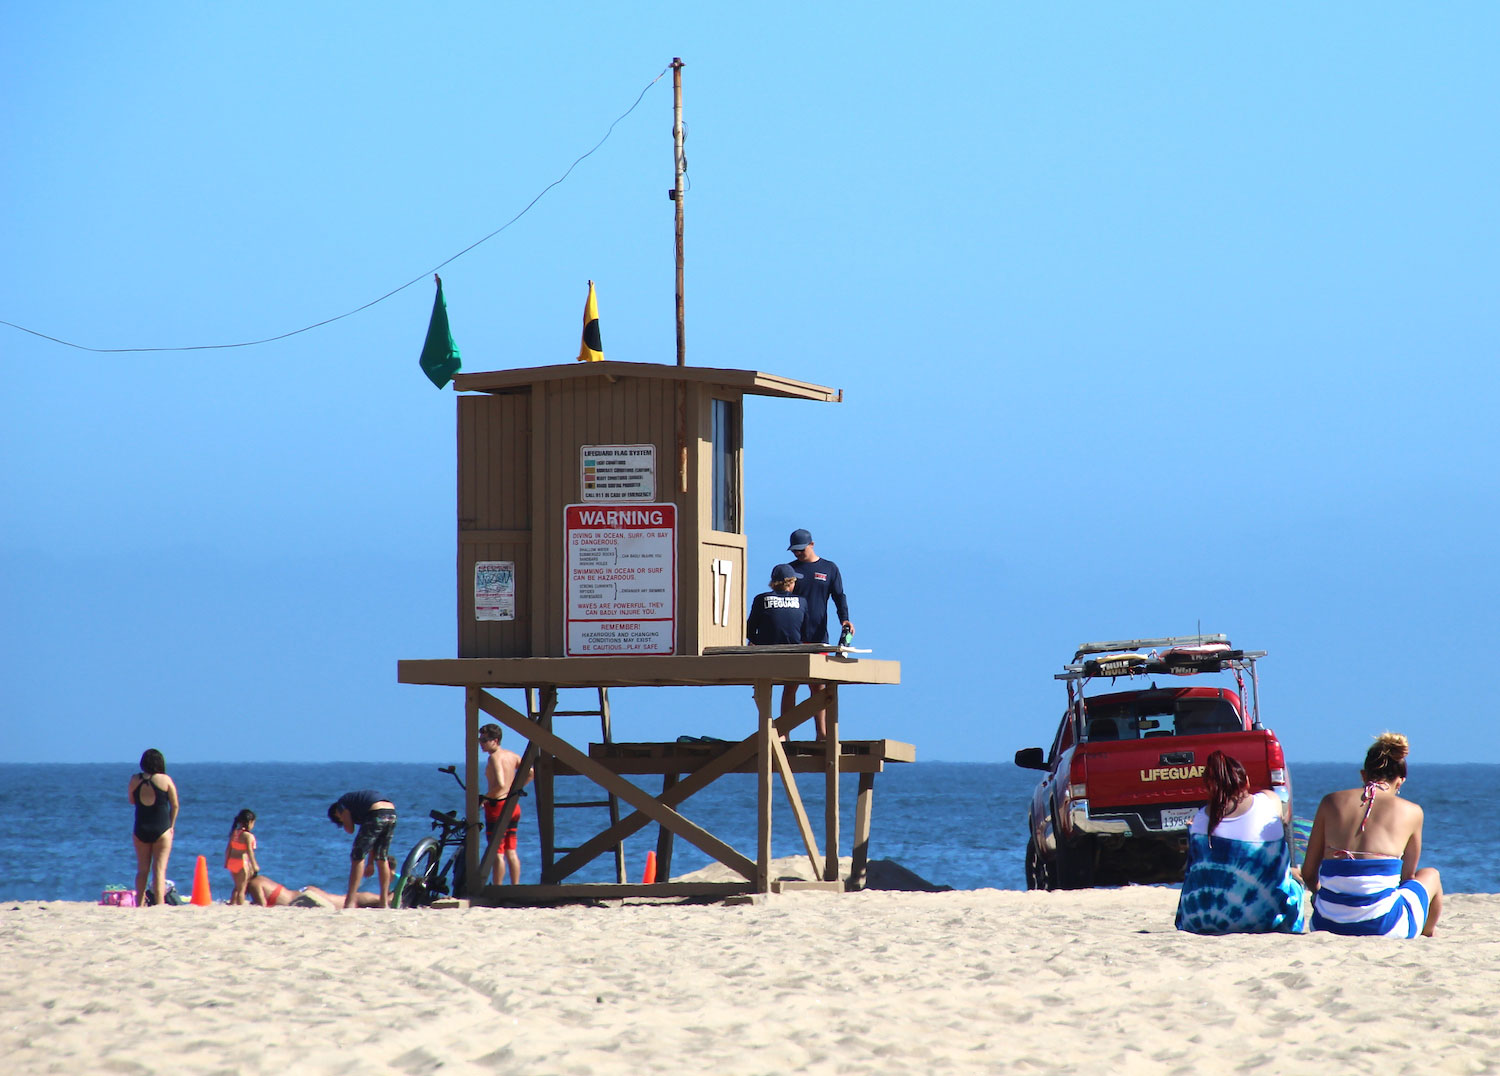 Police Files Lifeguard Tower